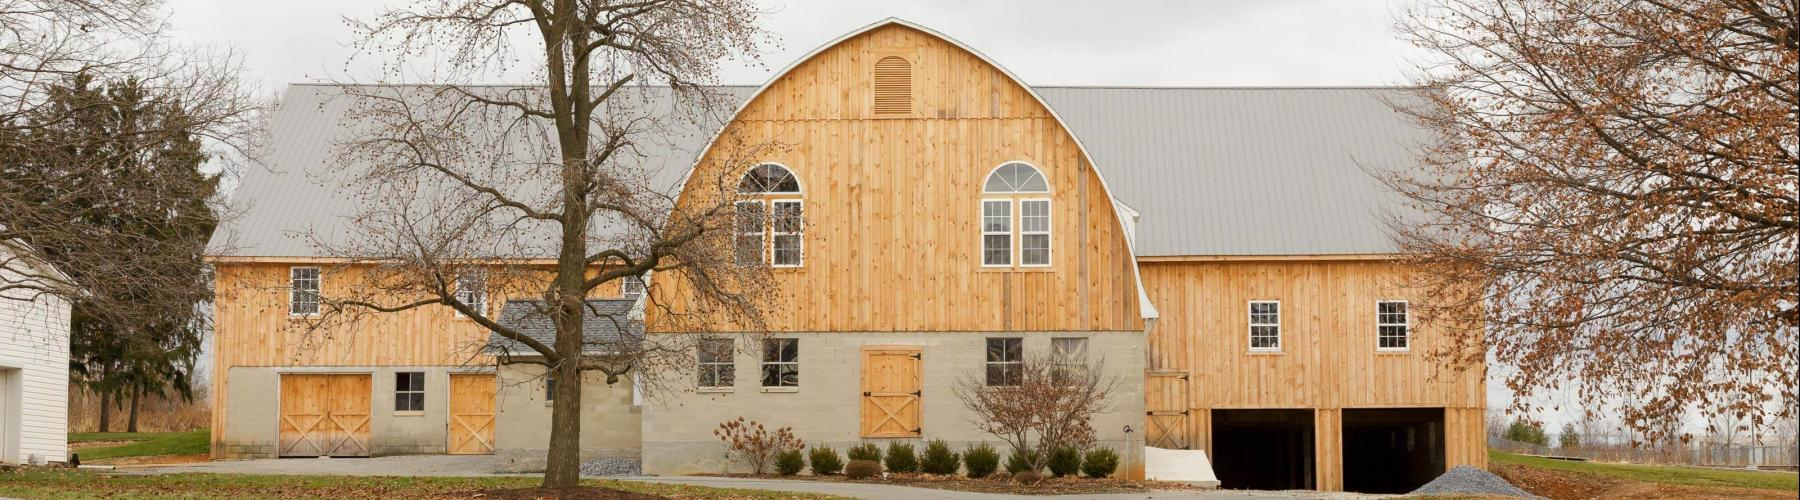 Another barn restoration by Stable Hollow Construction